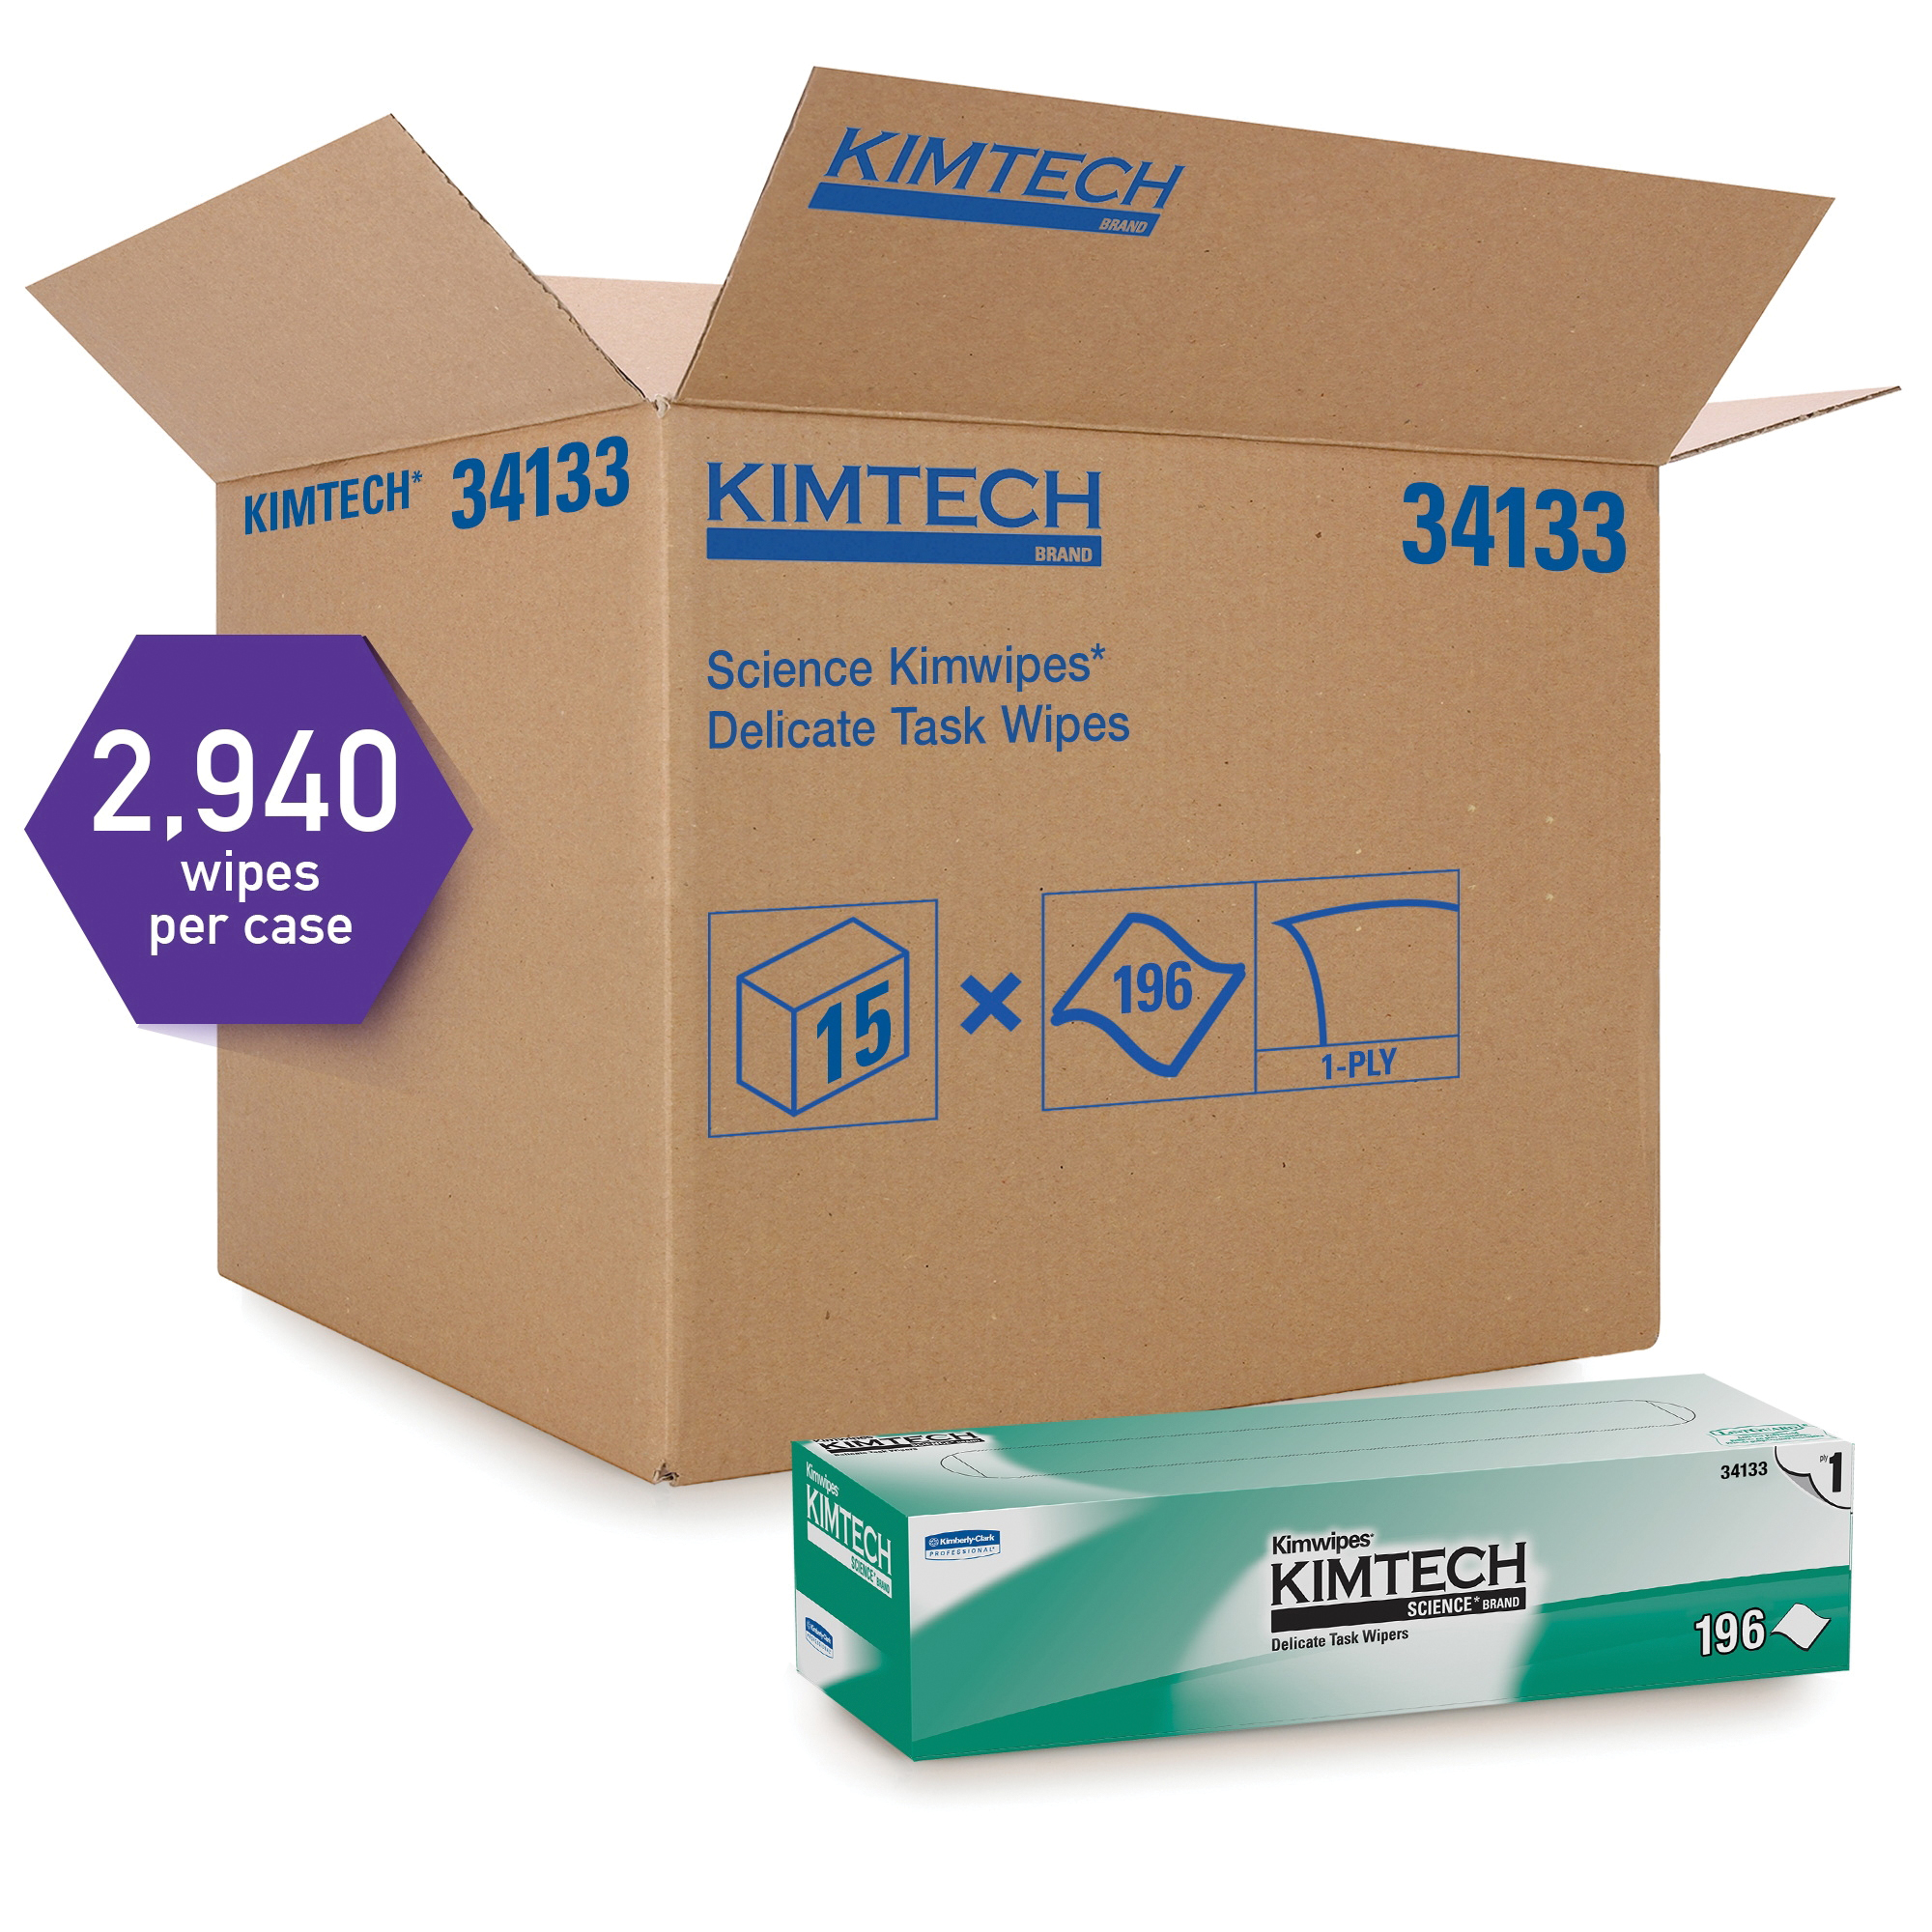 Kimtech Science* Kimwipes* 34120 Delicate Task Wiper, 4.4 in W, 280 Wipes Capacity, Tissue, White